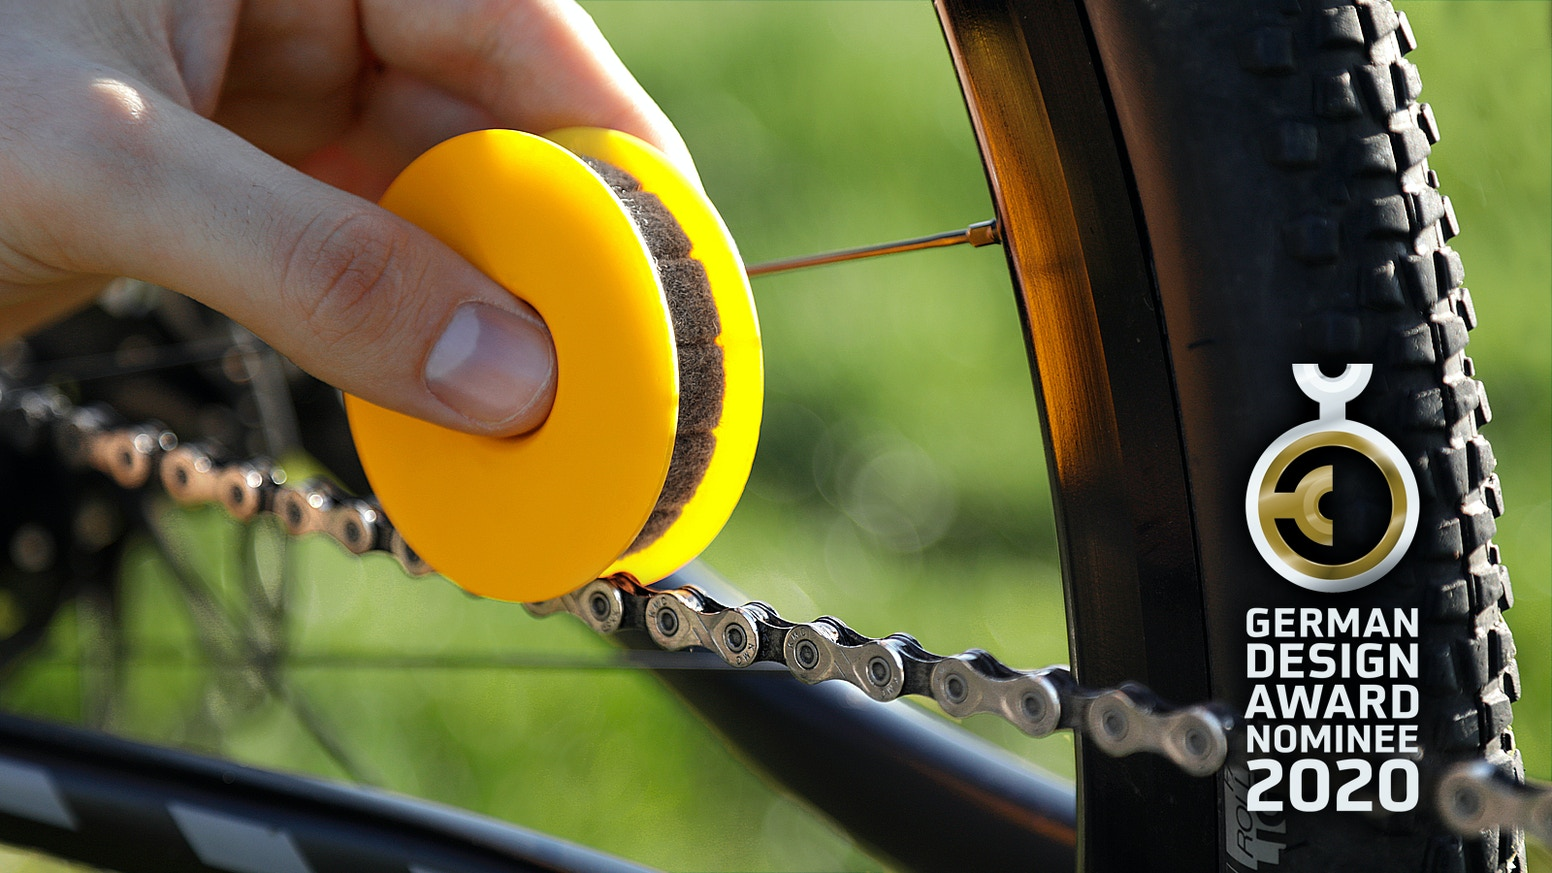 Chain maintenance has never been easier. No more dirty fingers, more riding pleasure & less pollution. Our shop is open!